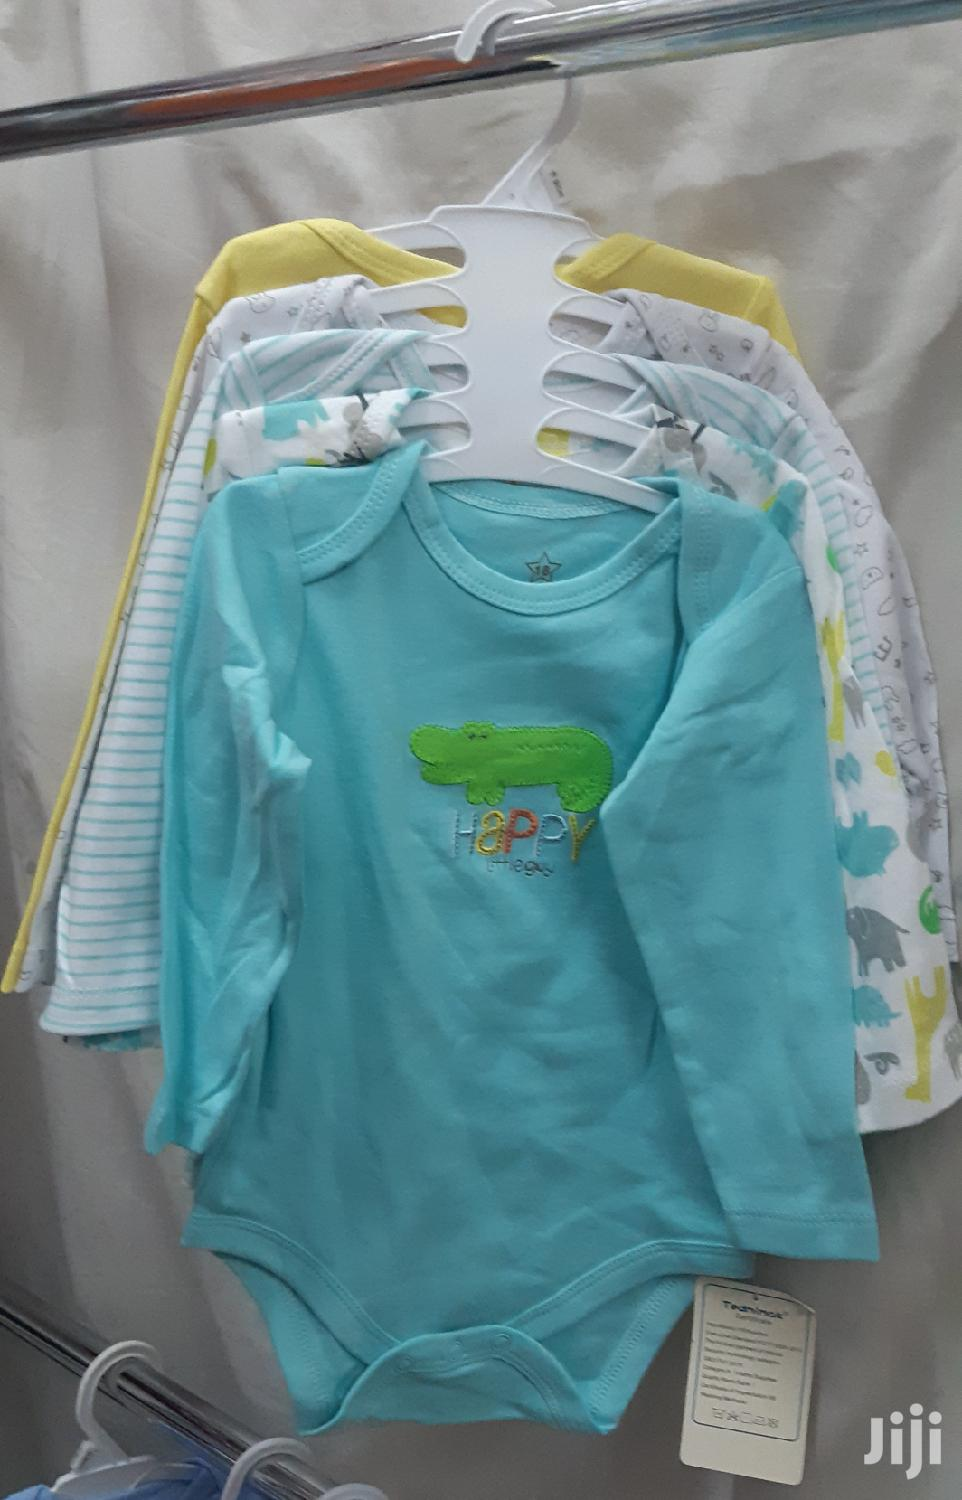 Baby Boby Suits